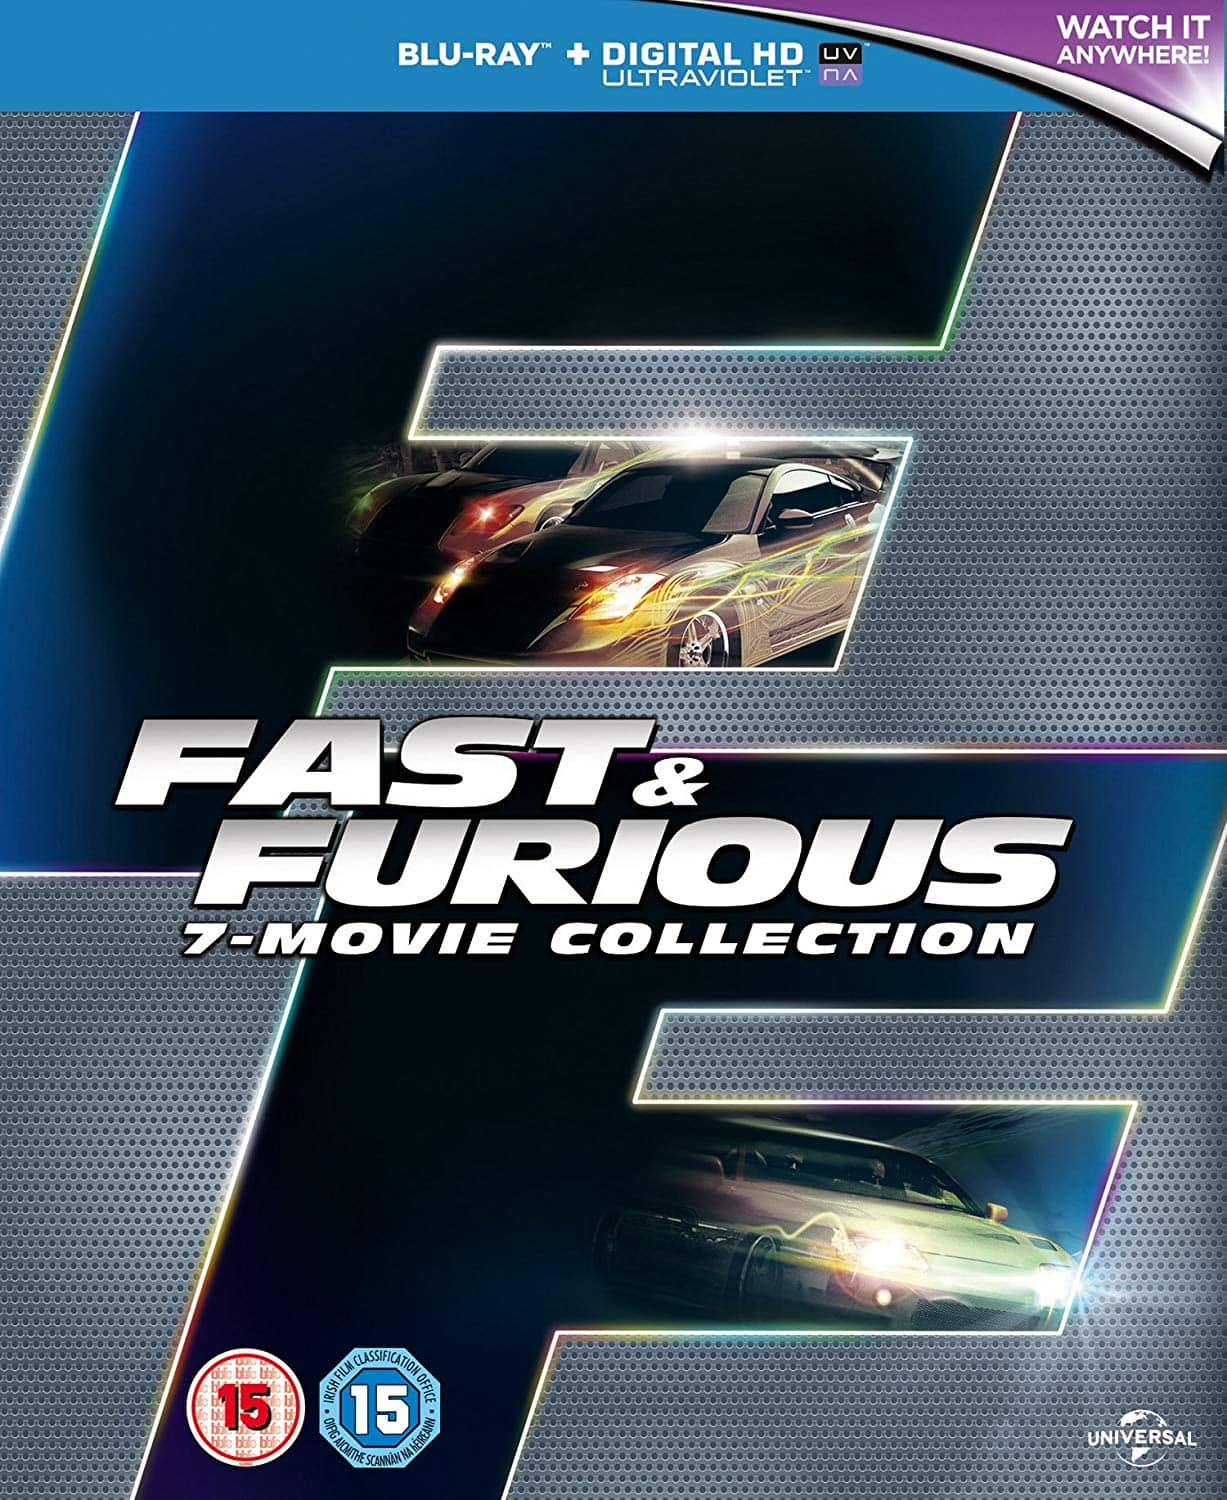 Fast & Furious 7-Movie Collection (Region-Free Blu-ray) $15 shipped @ Amazon UK